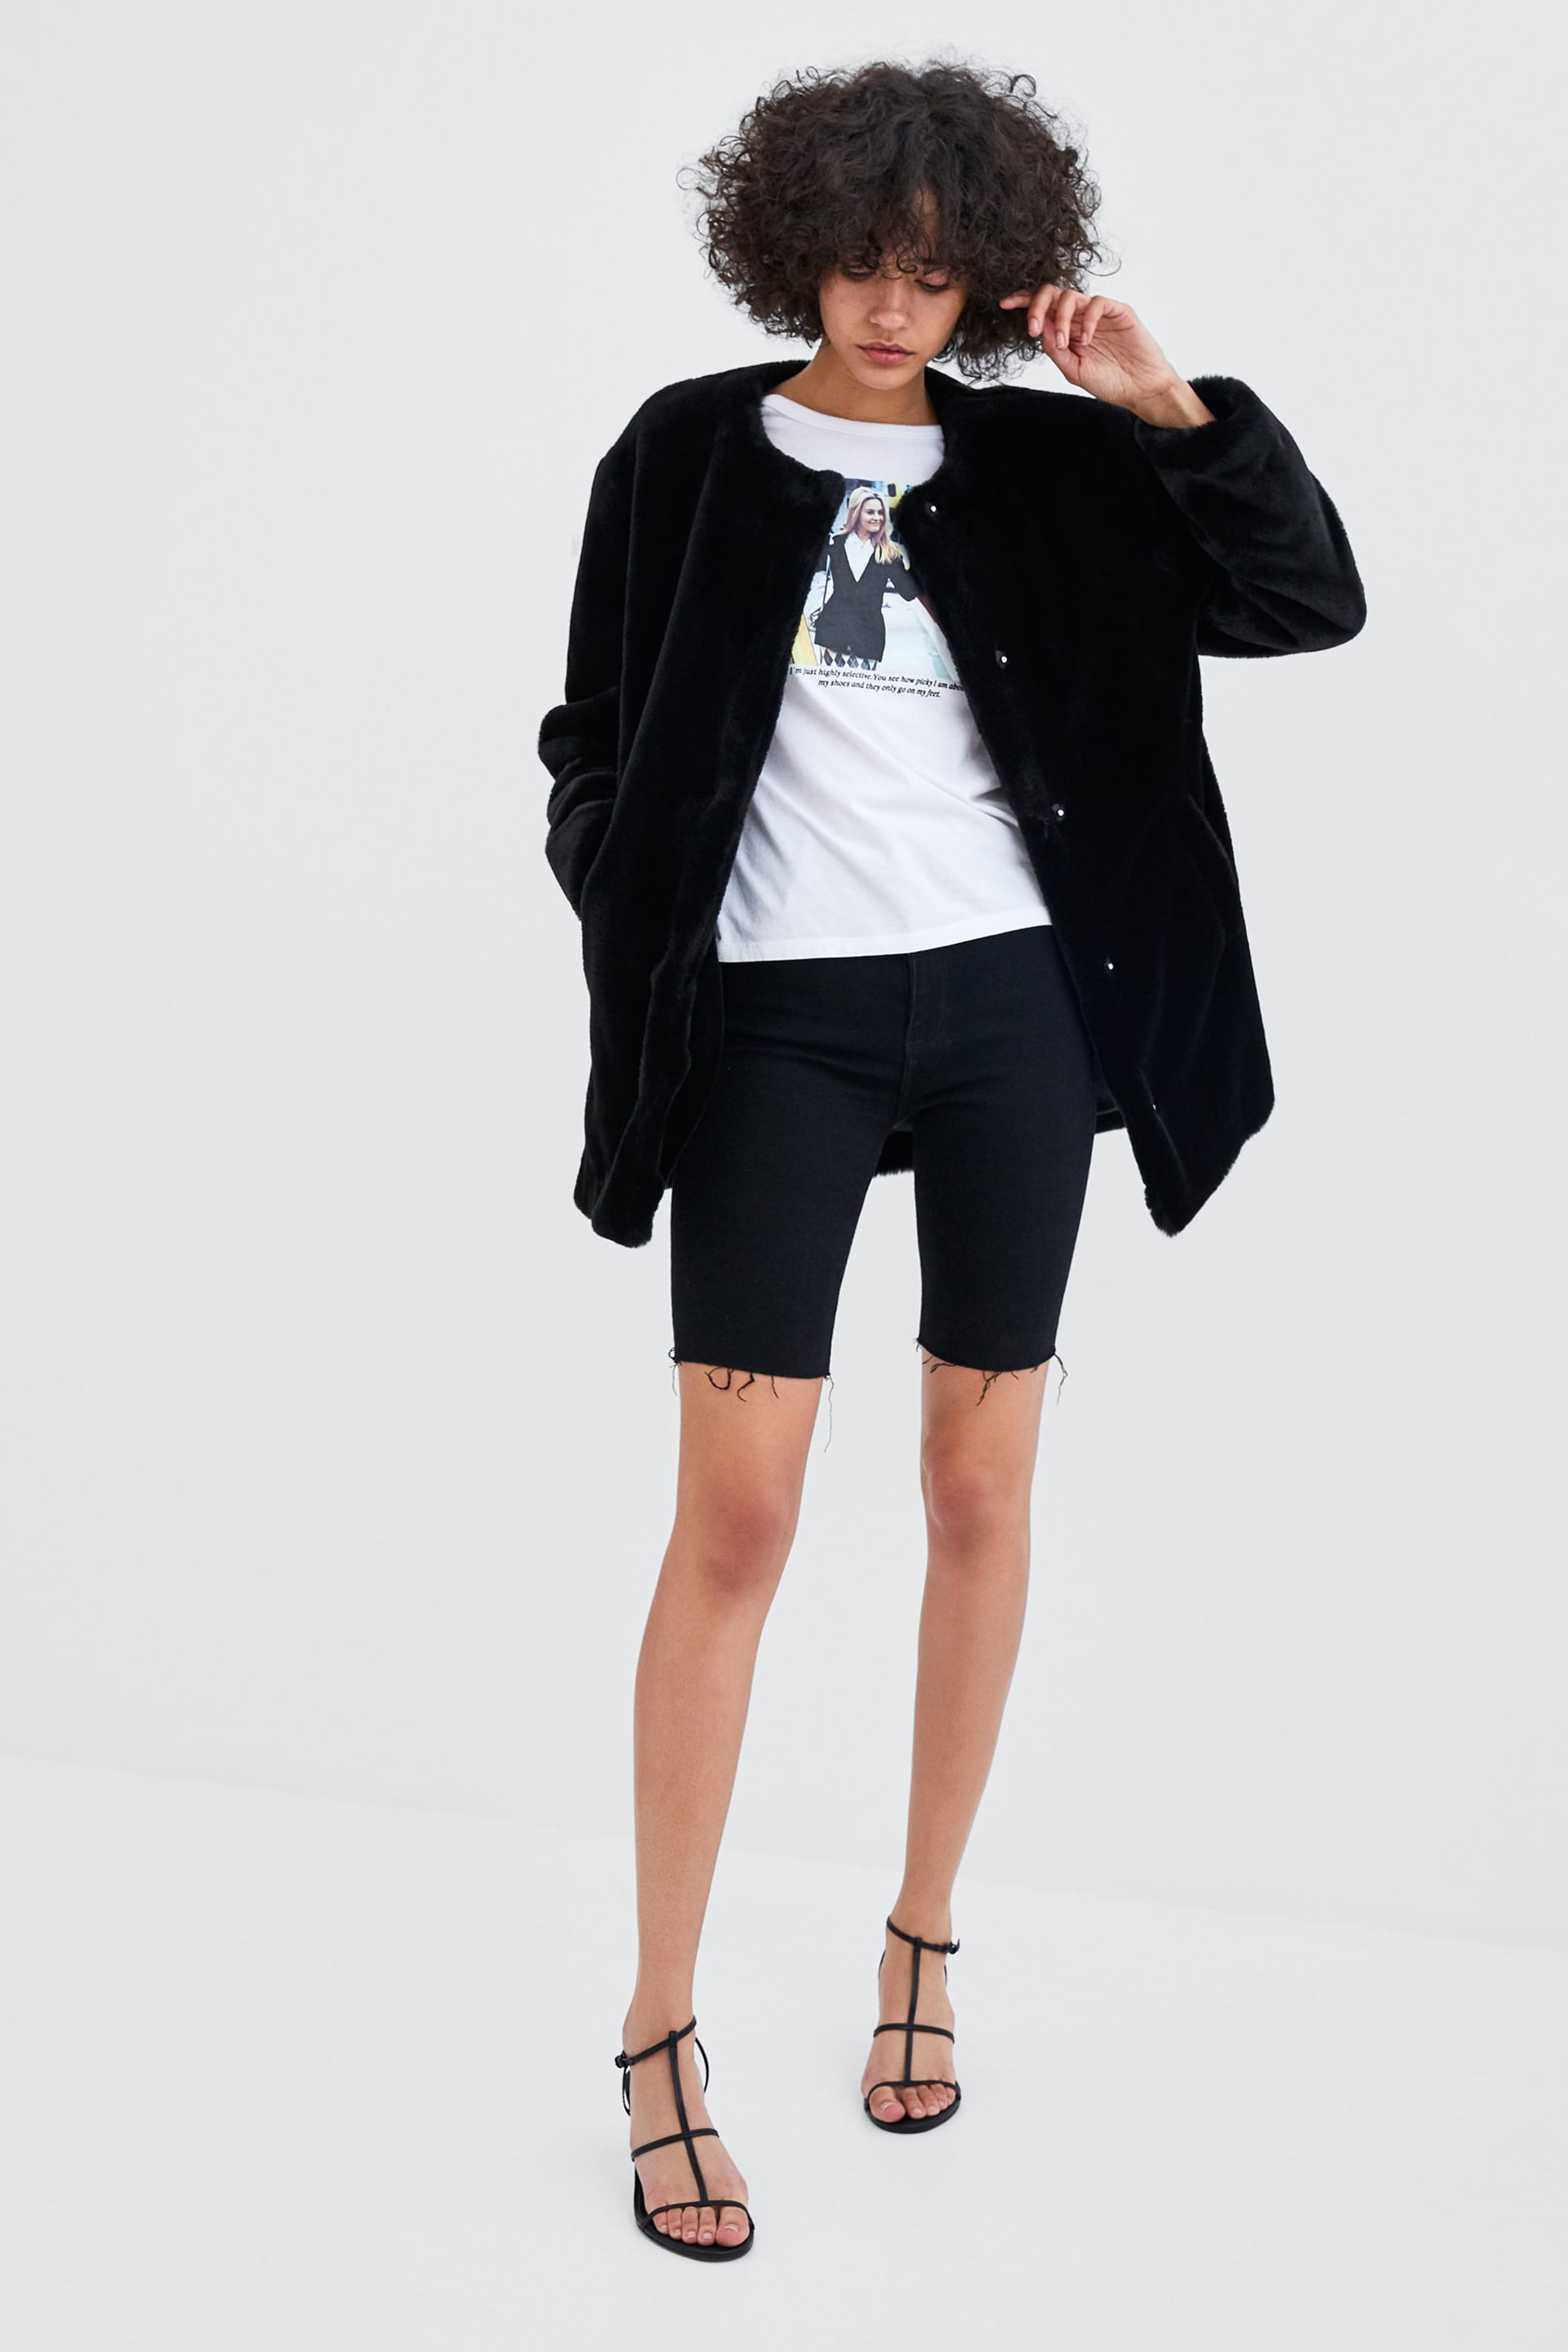 8f73f16a Best Zara Winter Coats 2018: Womens Fur, Puffers & More